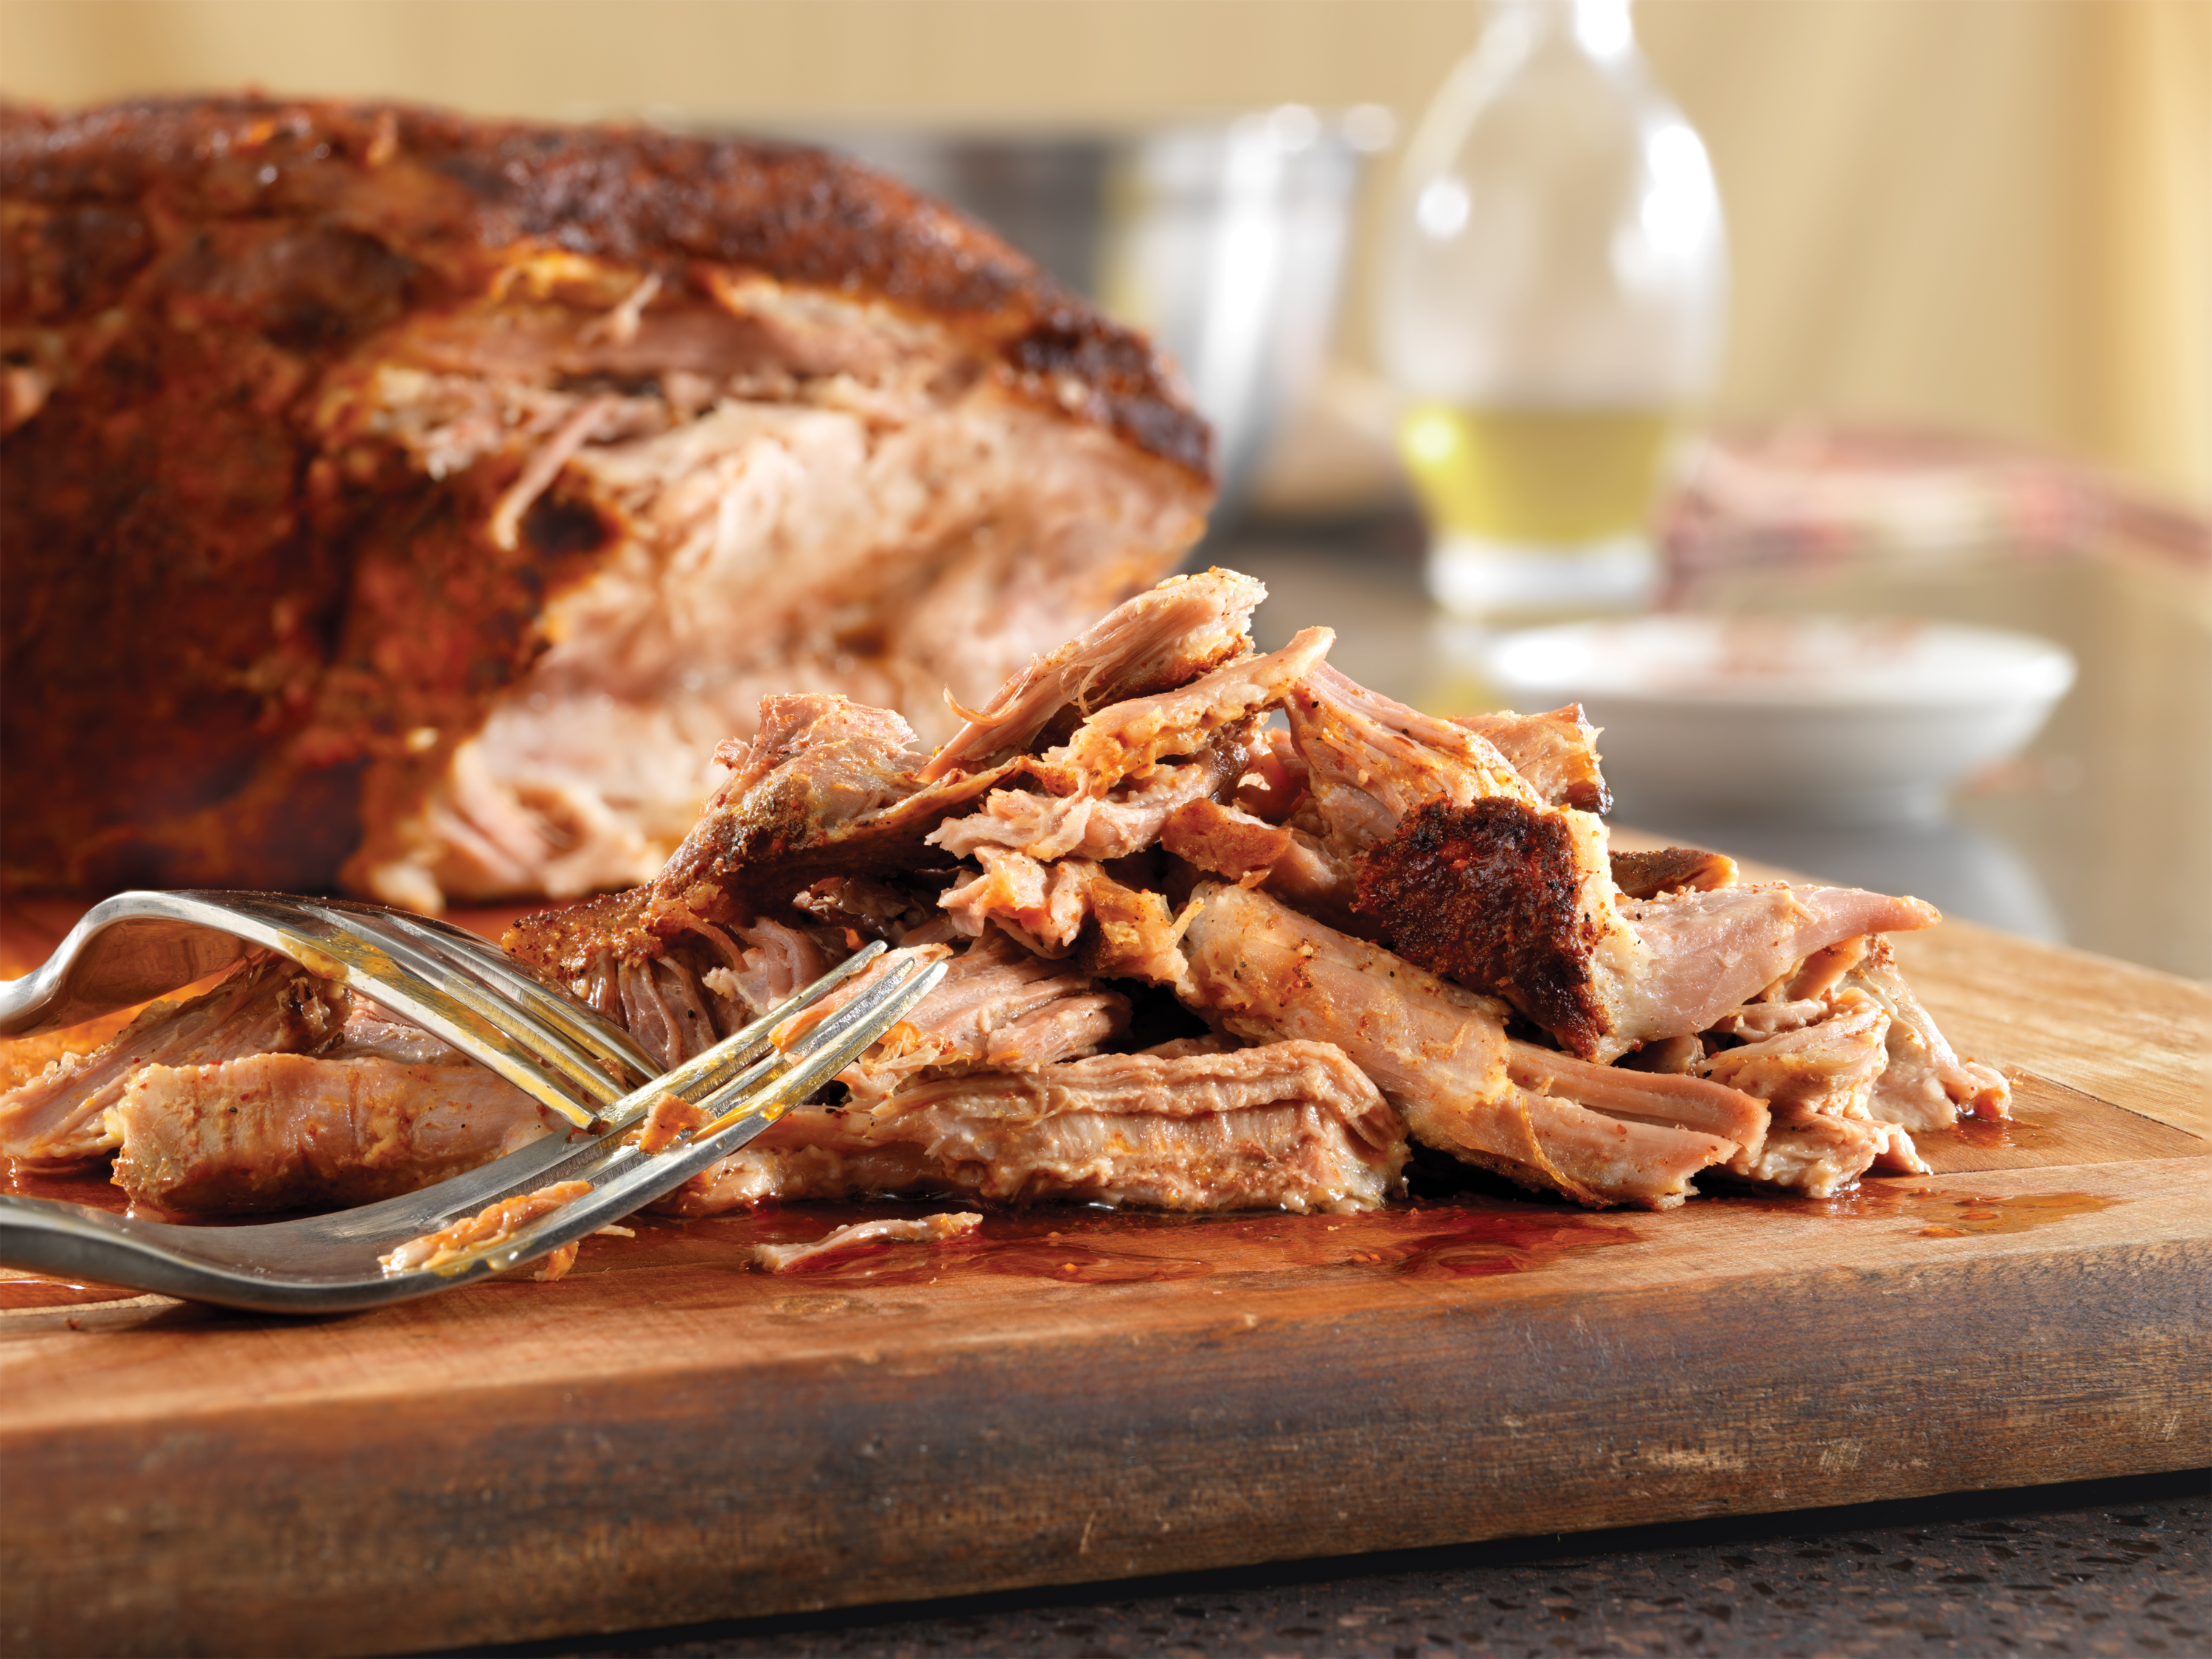 Chili Rubbed Slow Cooker Pulled Pork